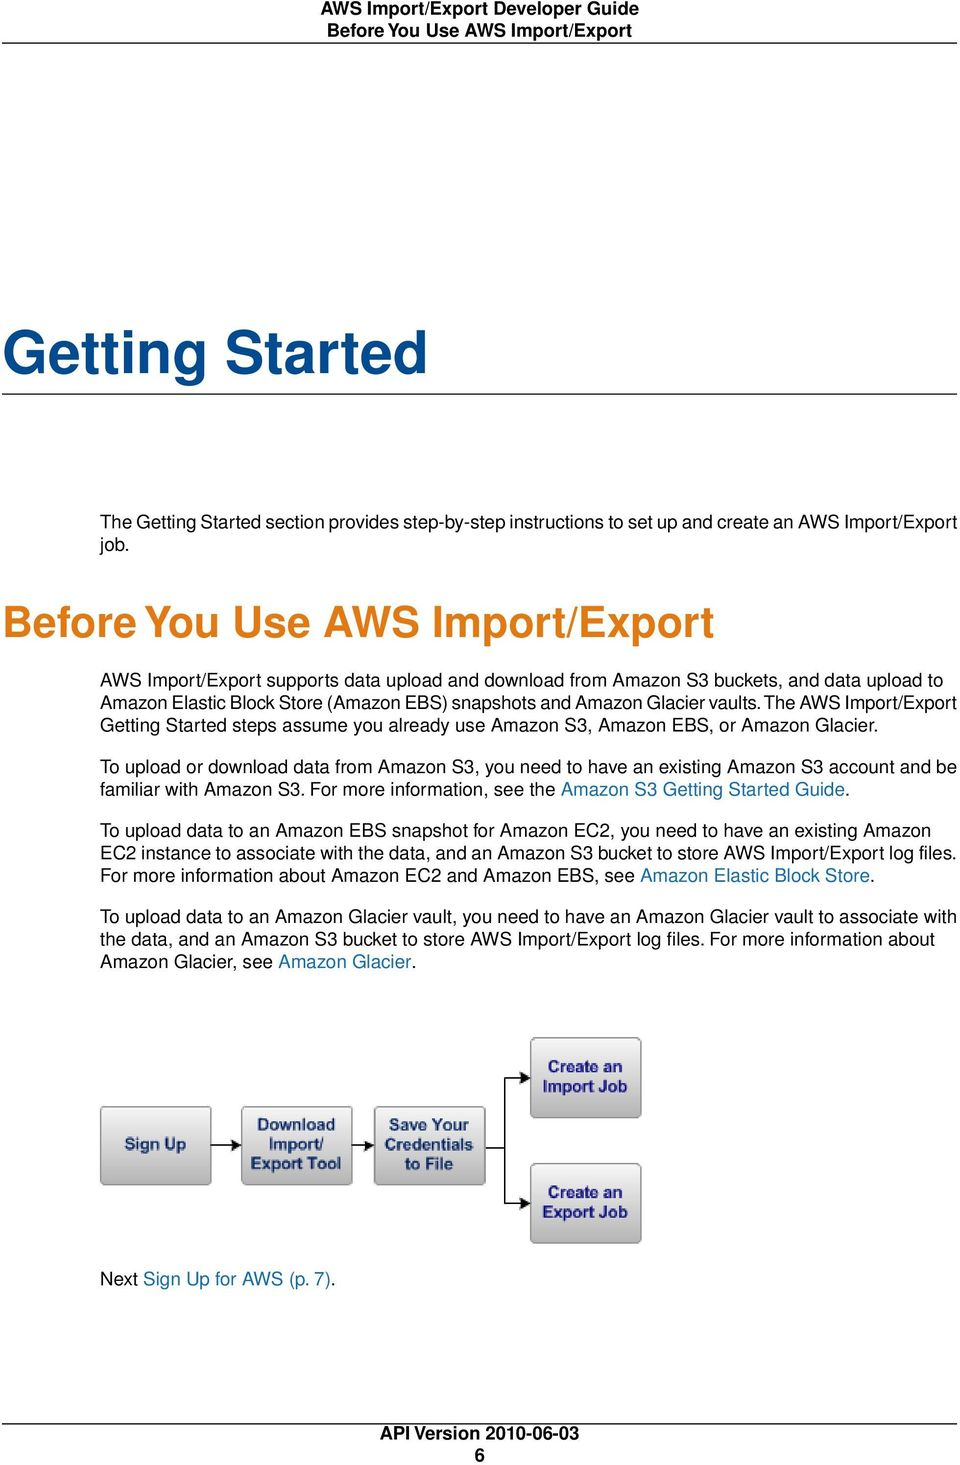 vaults. The AWS Import/Export Getting Started steps assume you already use Amazon S3, Amazon EBS, or Amazon Glacier.